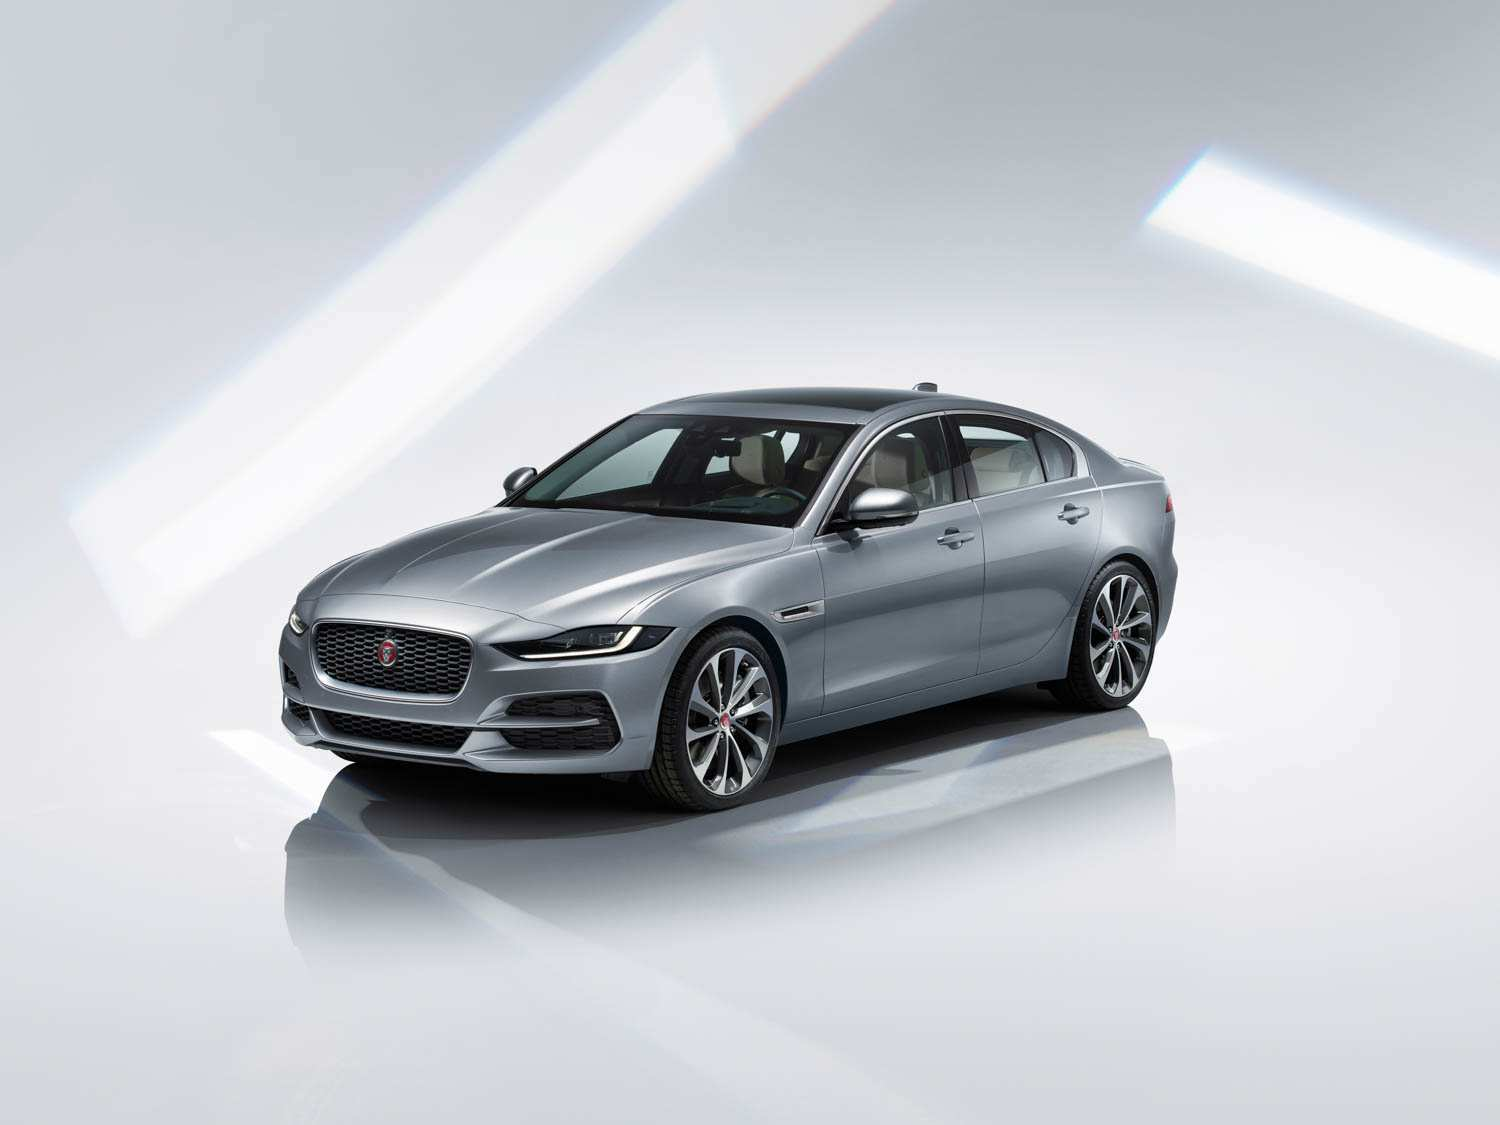 83 The Best 2020 Jaguar Xe Sedan Redesign And Concept